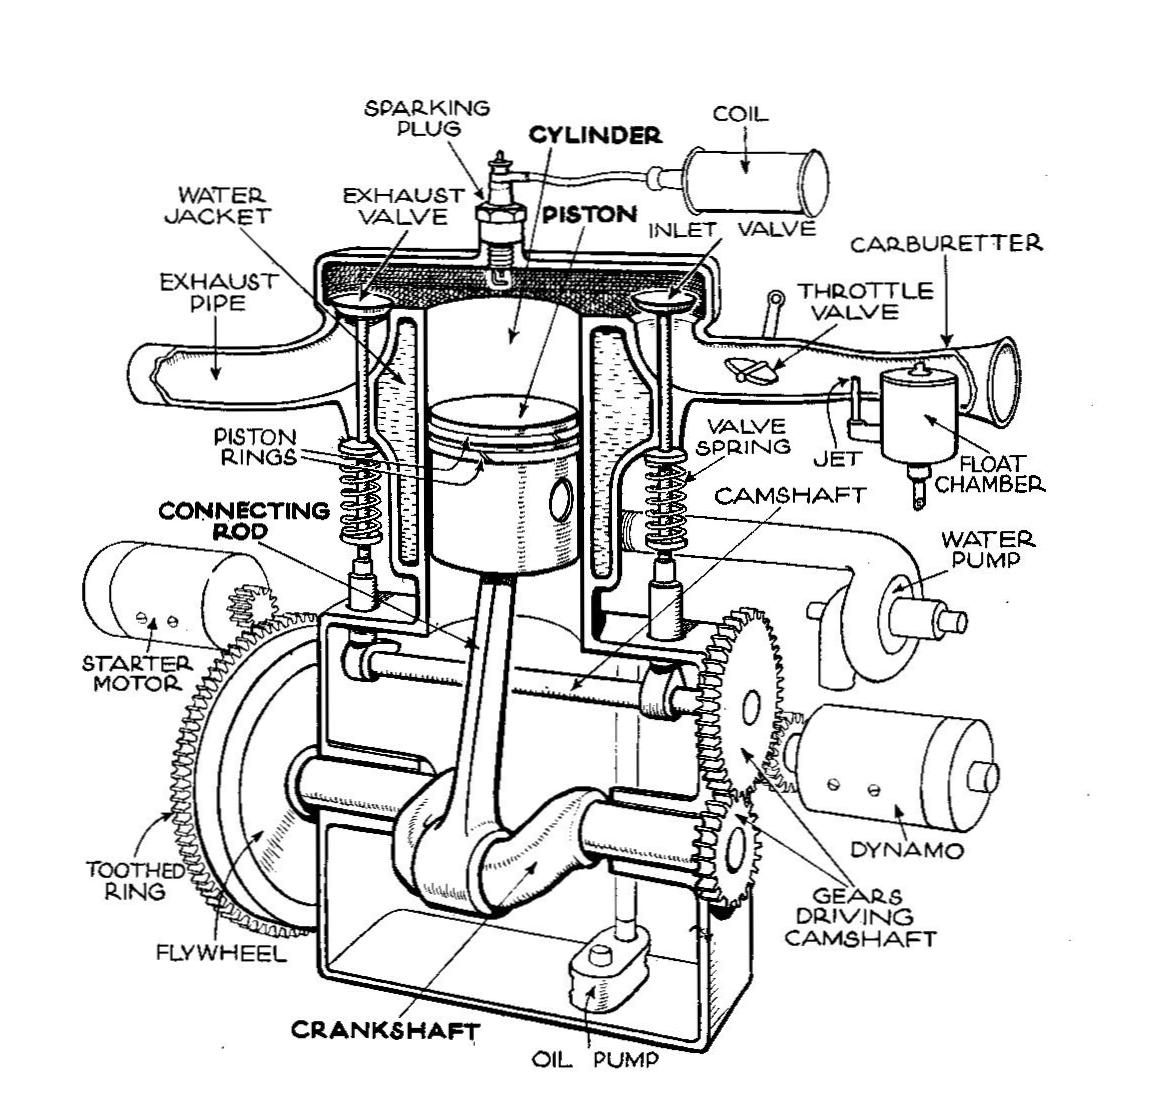 Auto Mobile Engine Diagram - wiring diagrams schematics